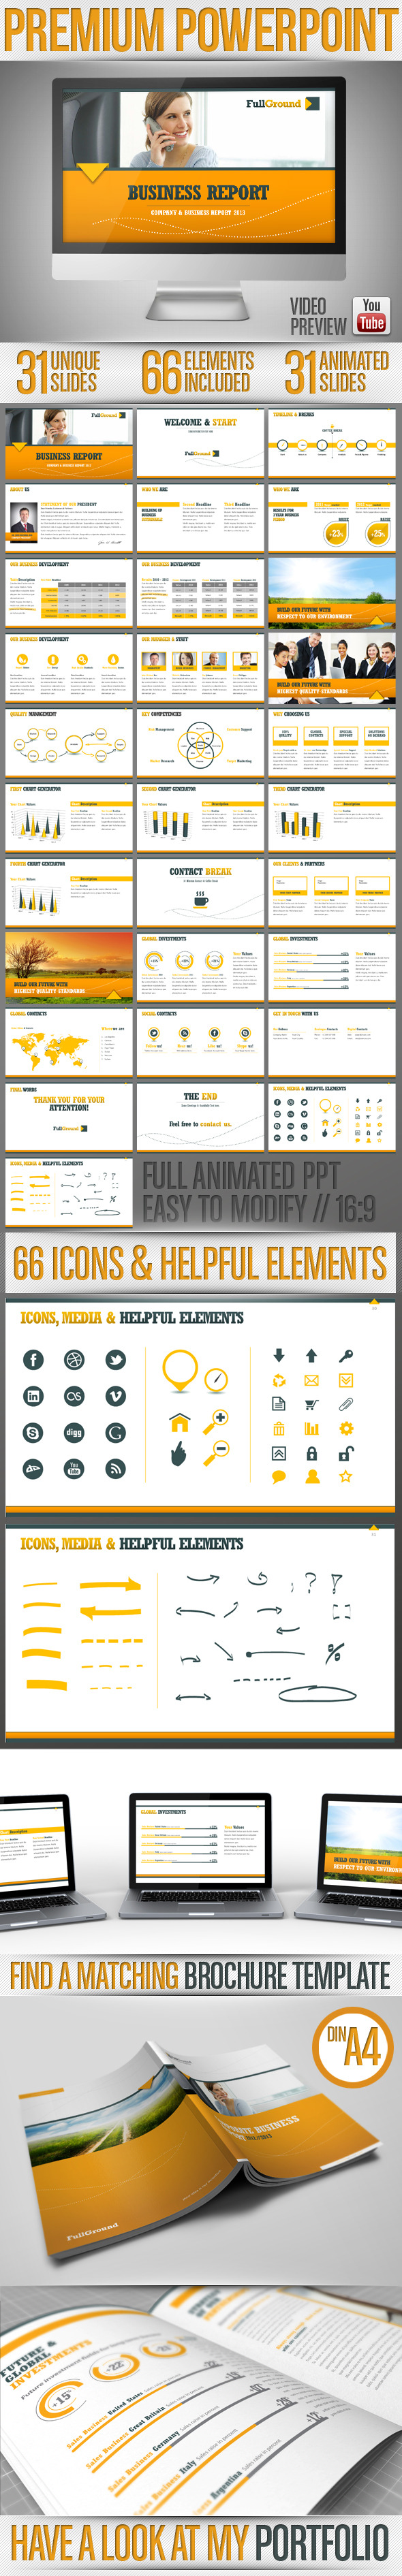 Fullground - PowerPoint Presentation Template - Business PowerPoint Templates